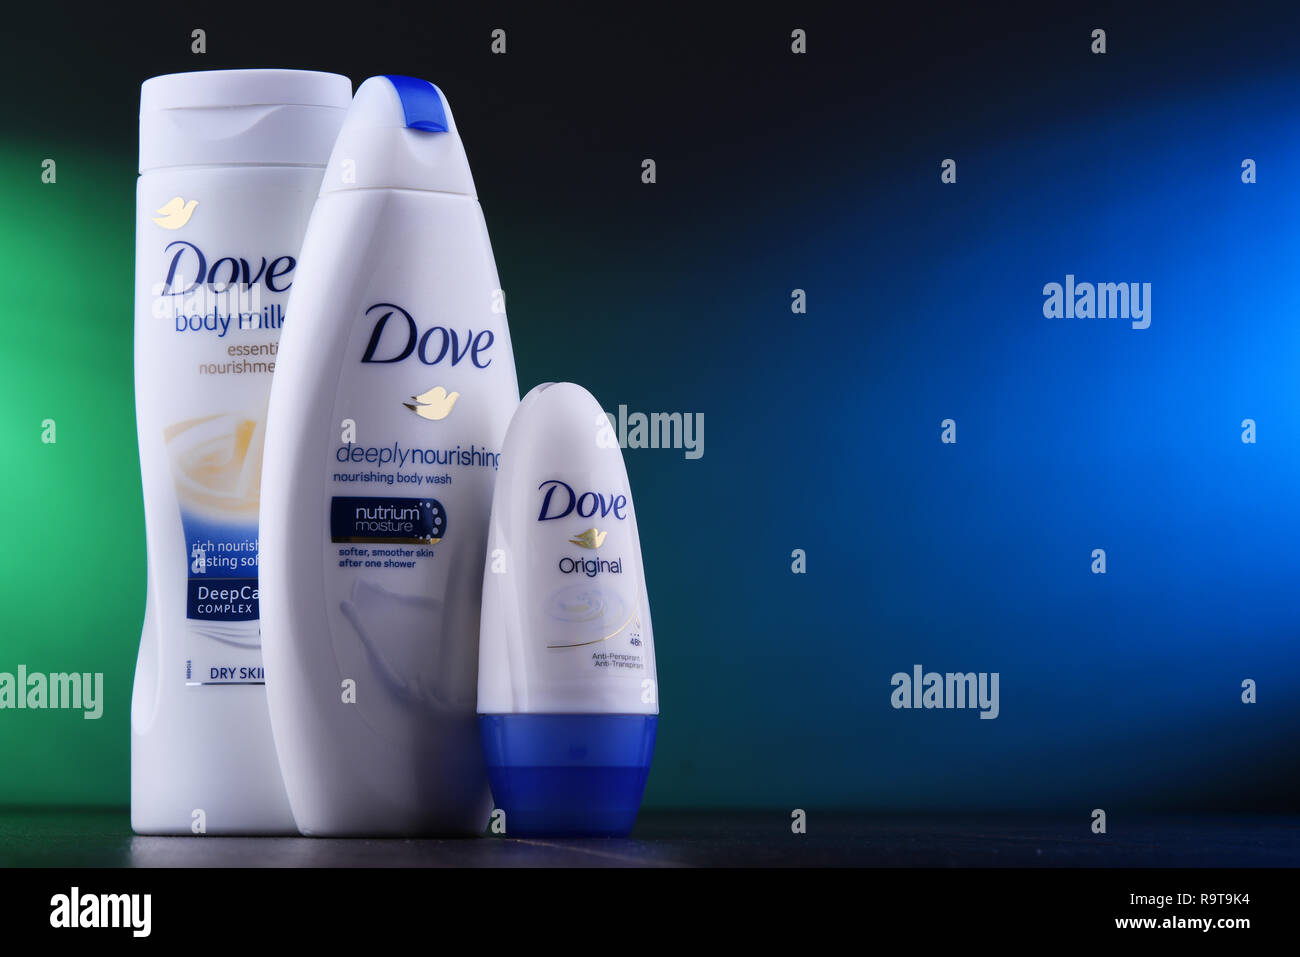 POZNAN, POL - DEC 5, 2018: Dove products. Introduced to the British market in 1955, Dove is a personal care brand, now owned by Unilever and sold in m - Stock Image